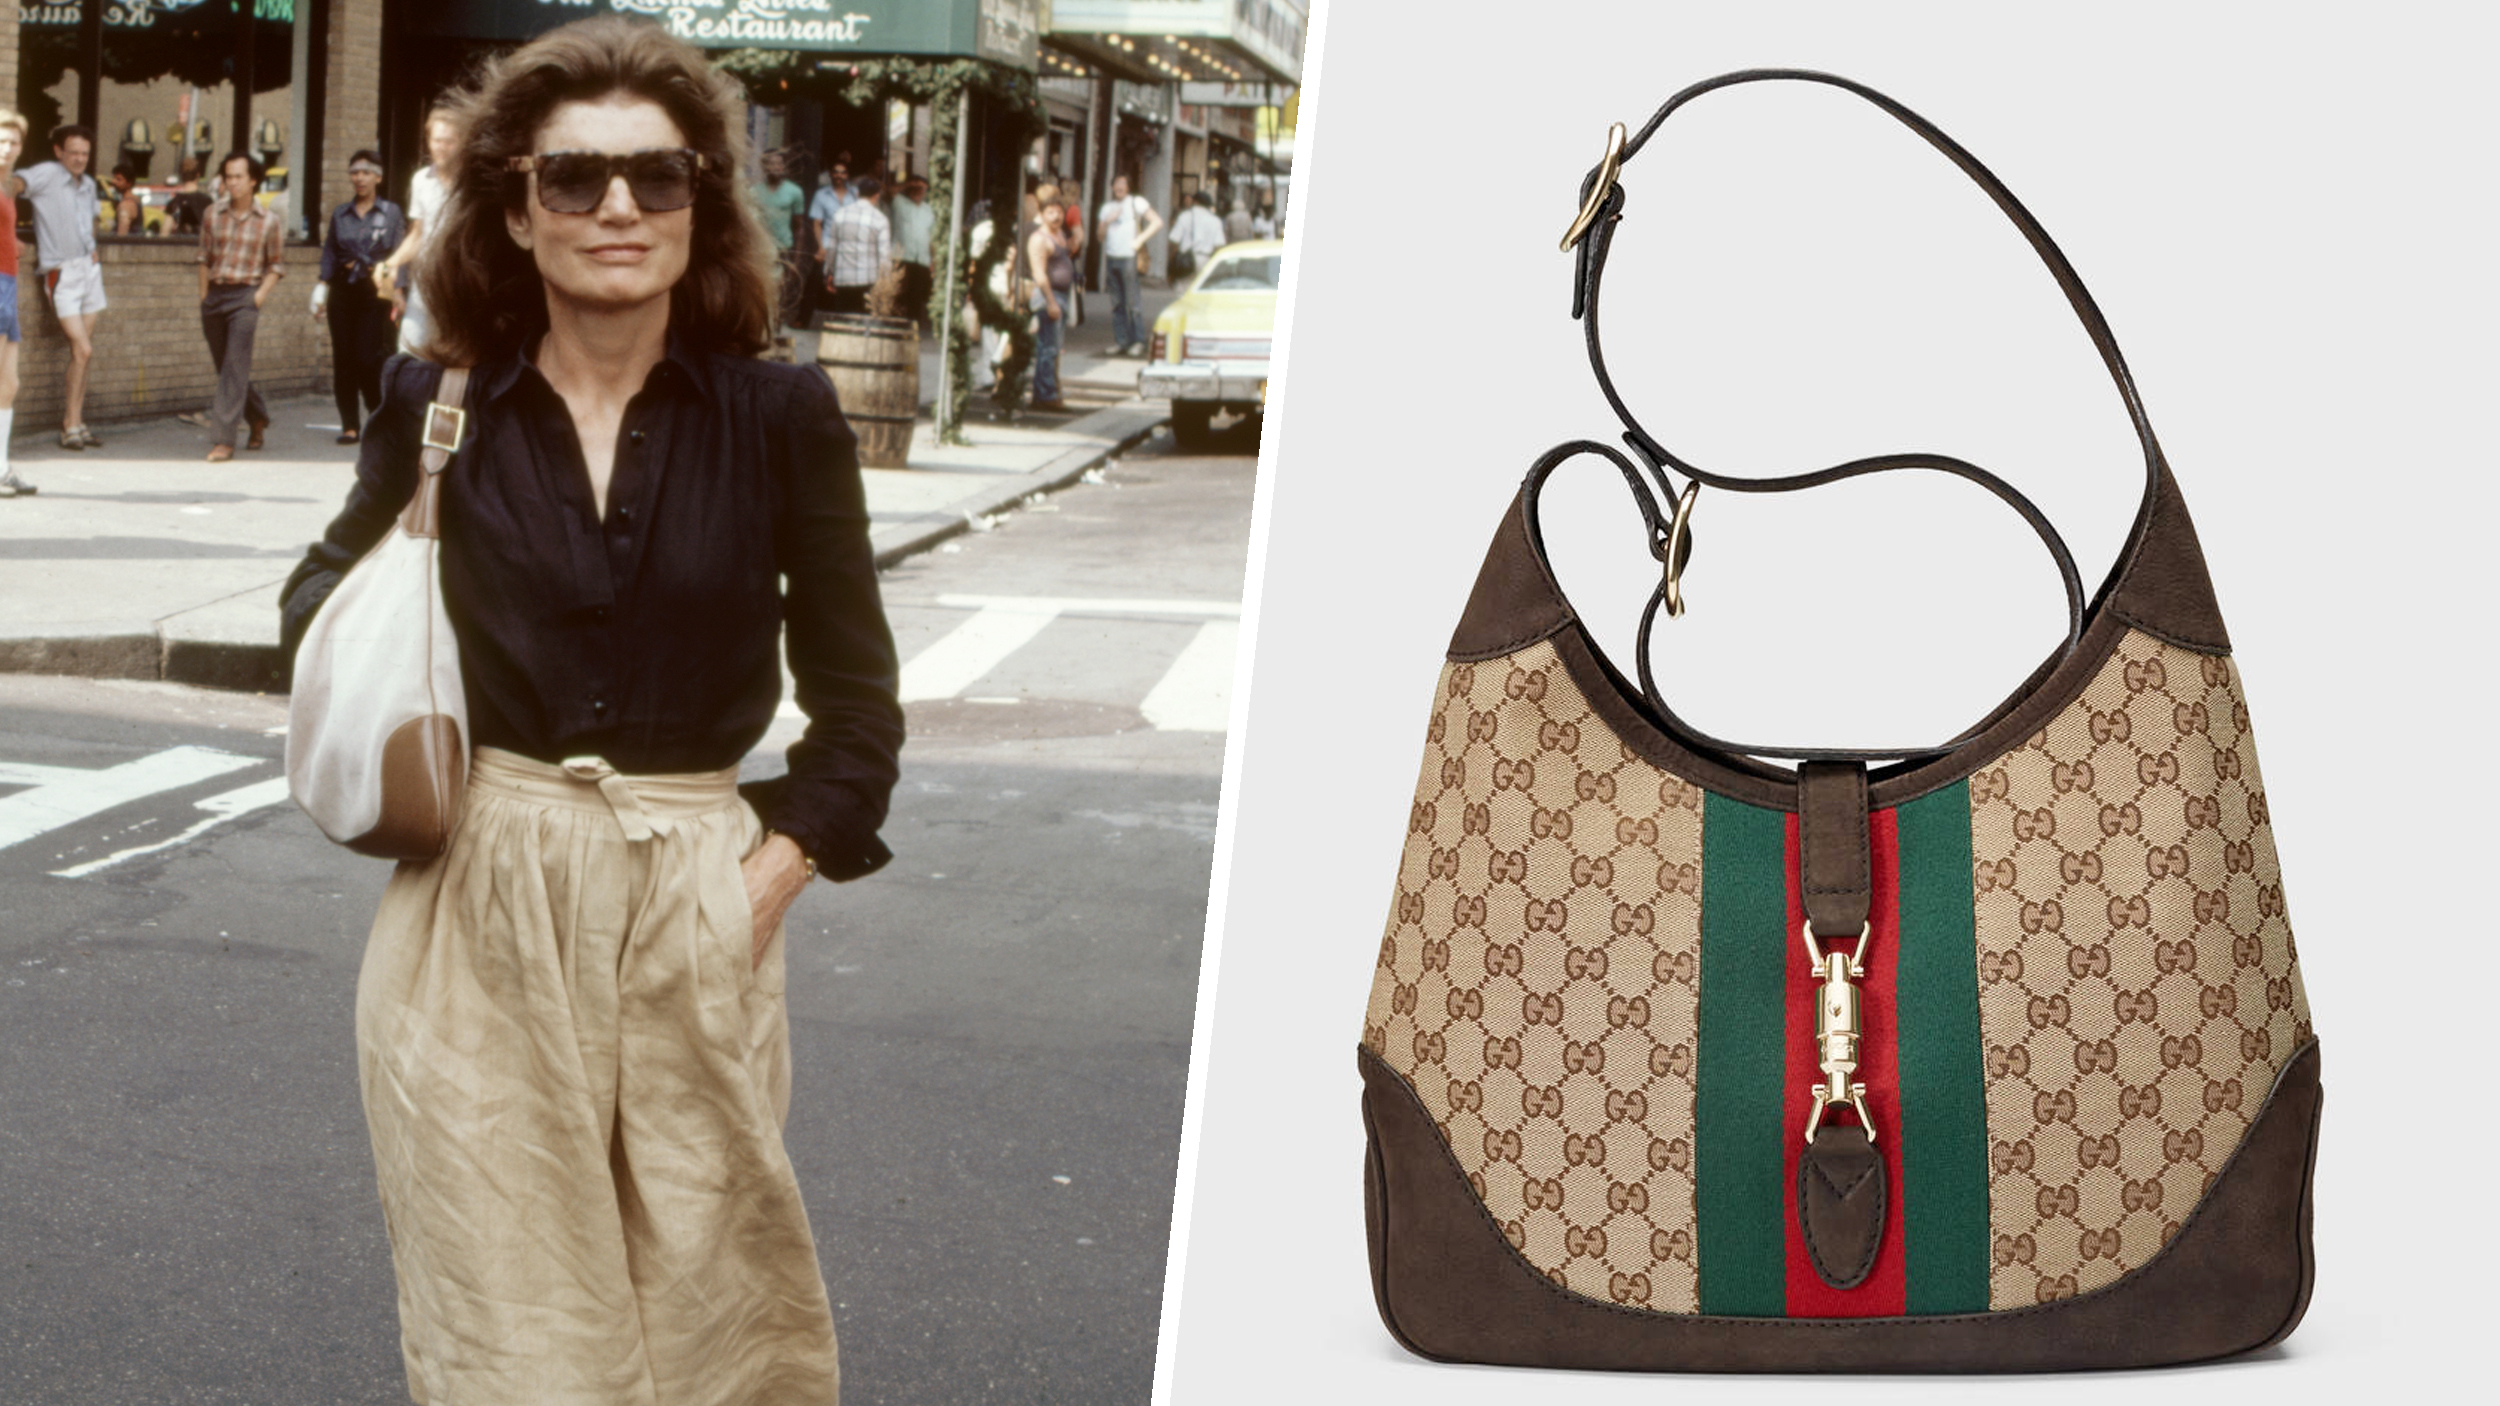 670e9c594f4e Iconic handbags and the women who inspired them